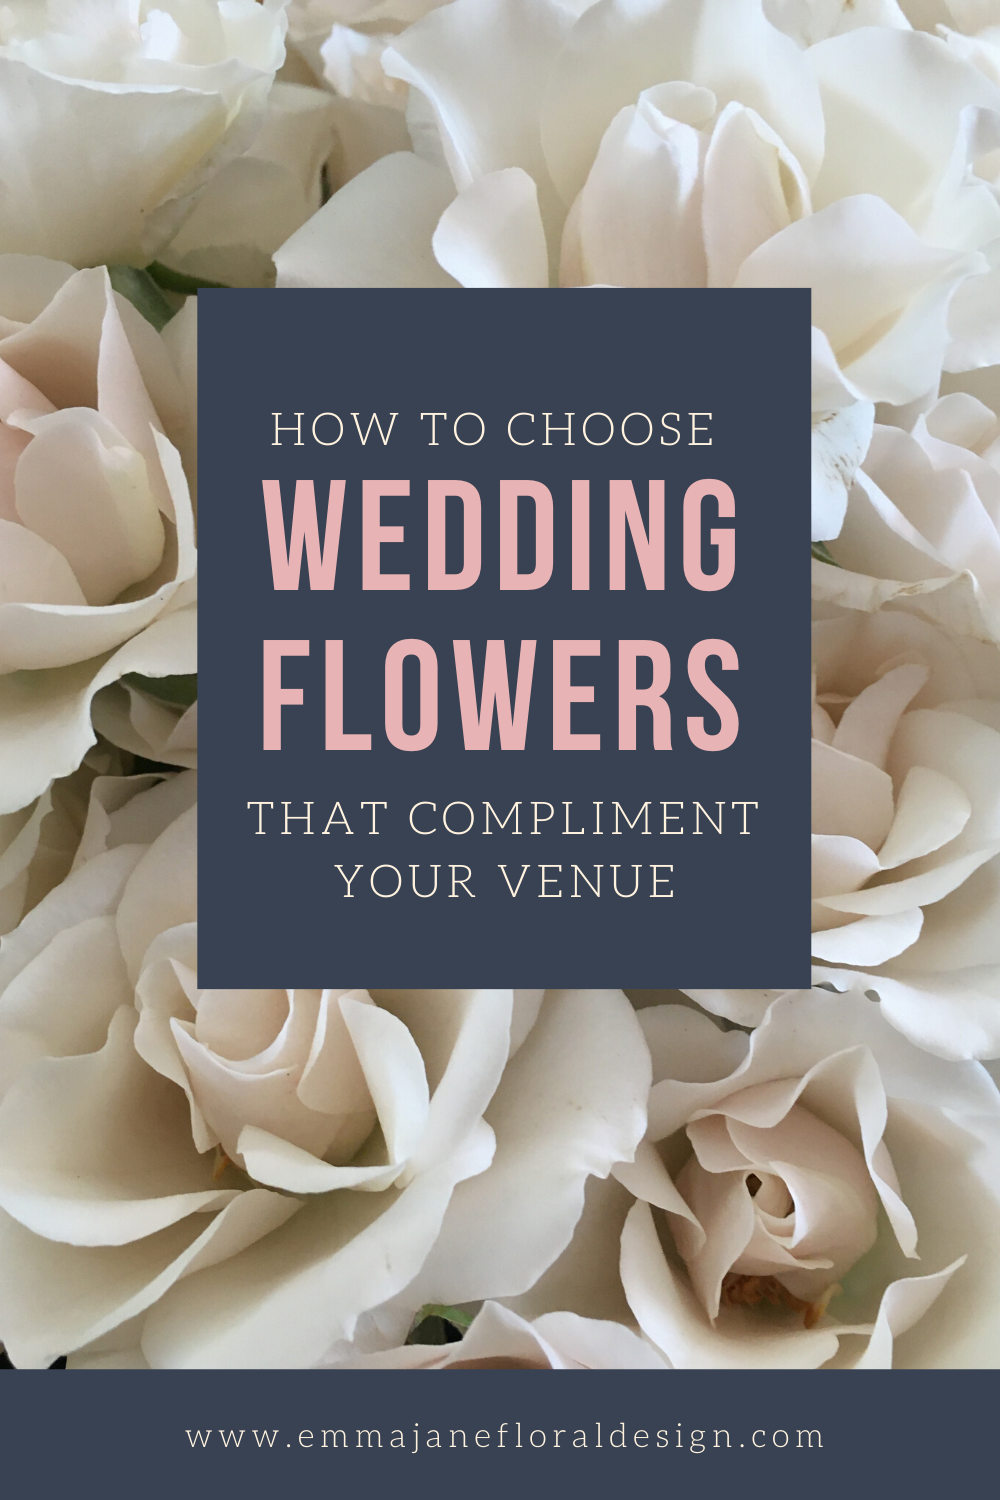 How to choose wedding flowers that compliment your wedding venue by Emma Jane Floral Design